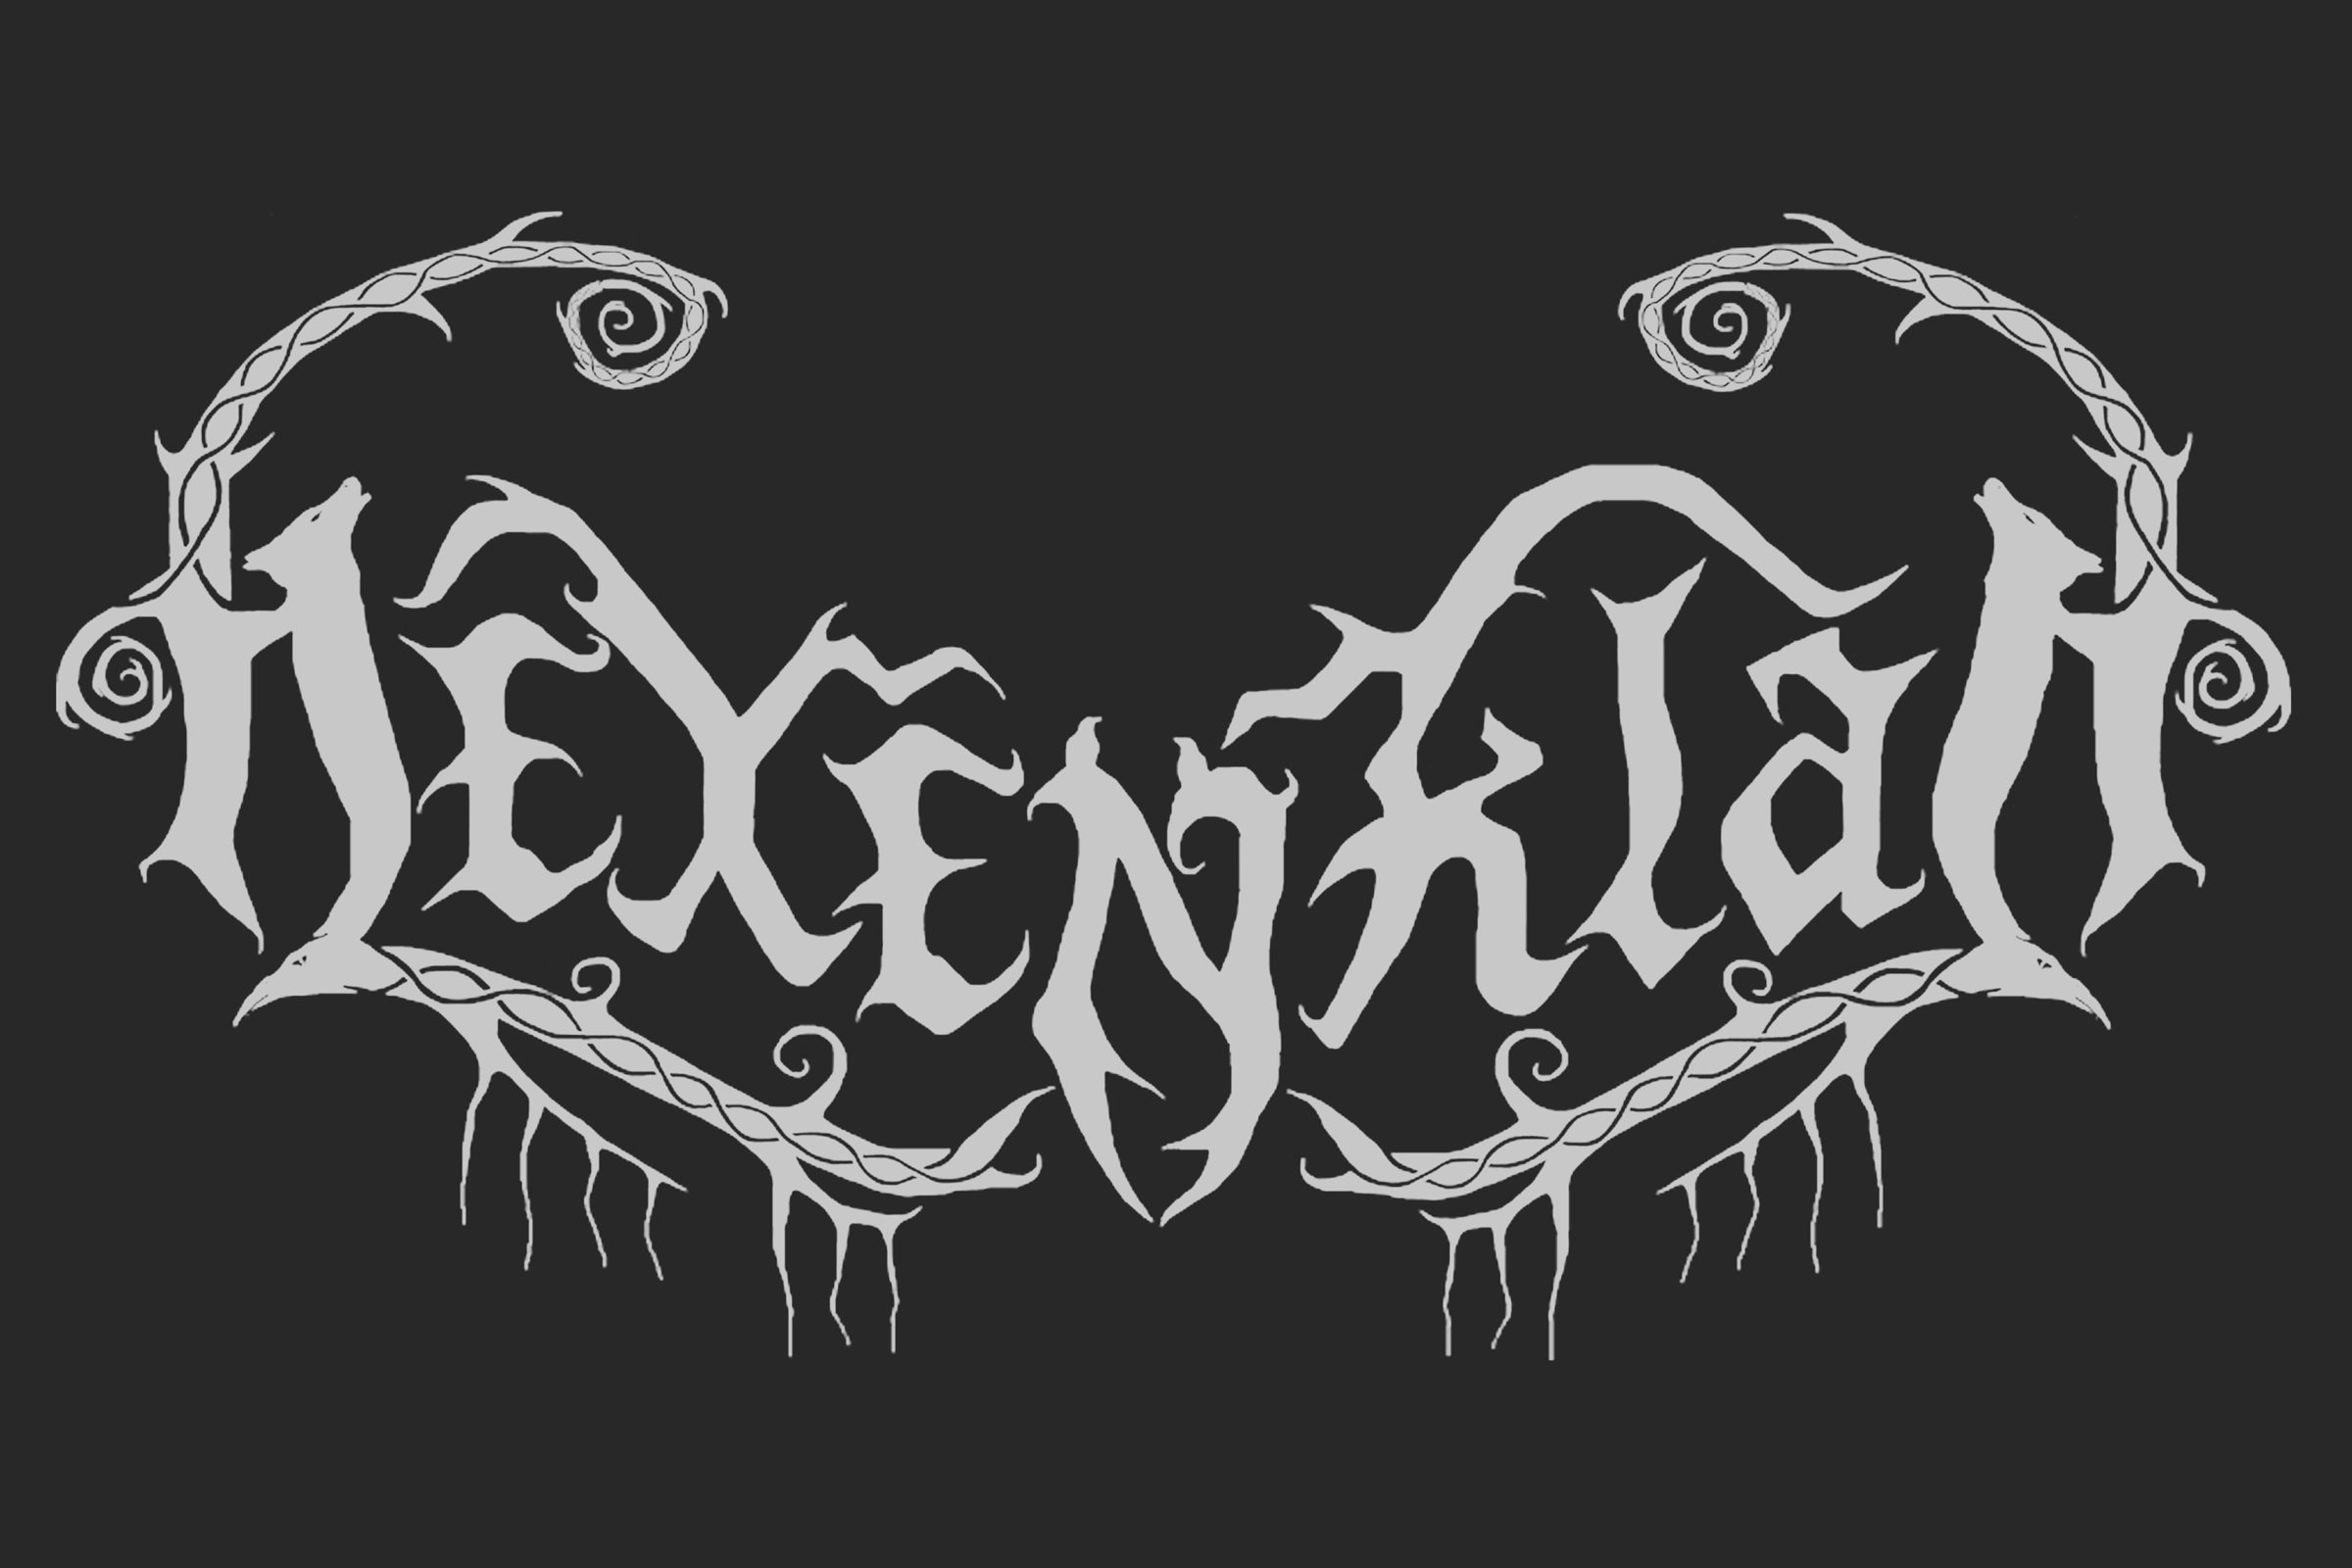 Hexenklad band logo